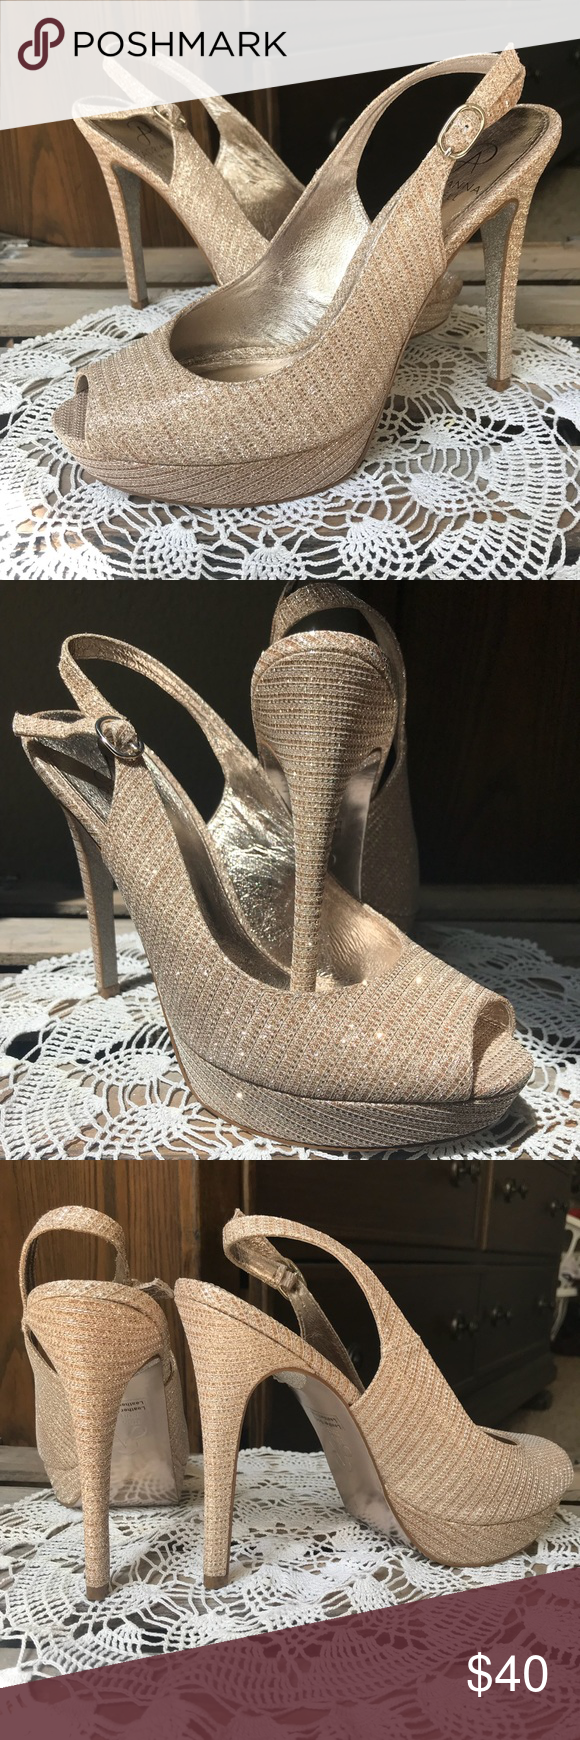 cbfc00aad Adrianna Papell Nude Lancelot Metallic Platforms Platforms with adjustable  slingback strap. I wore these once